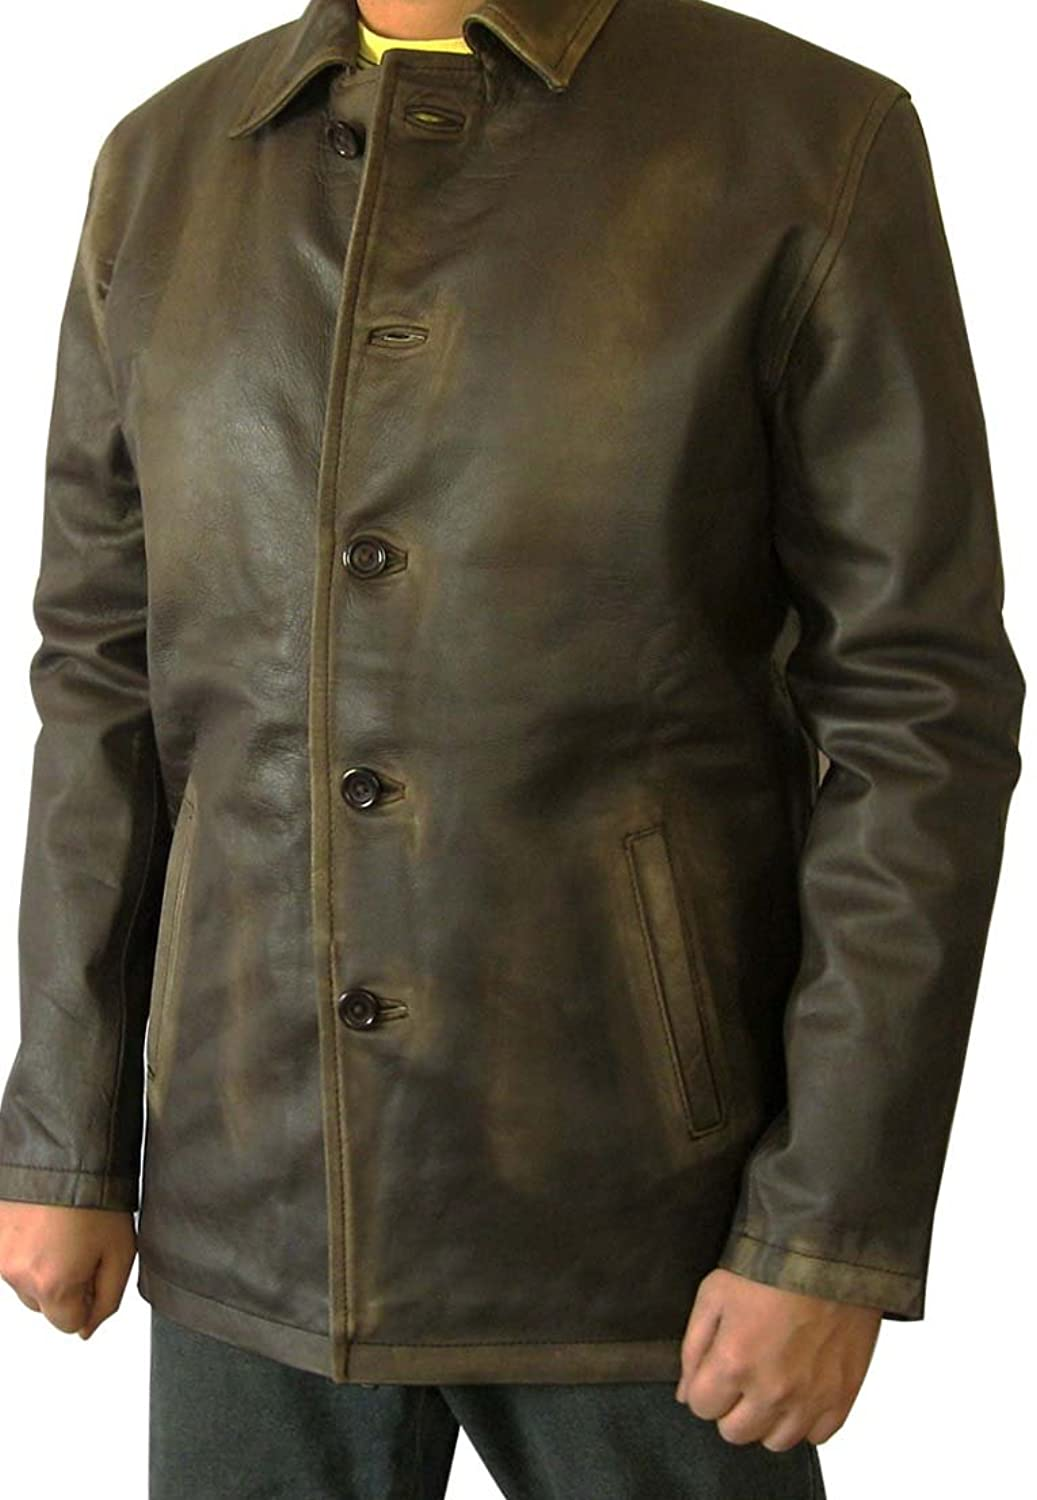 Super Brown Distressed Leather Jacket - Coat for Men at Amazon